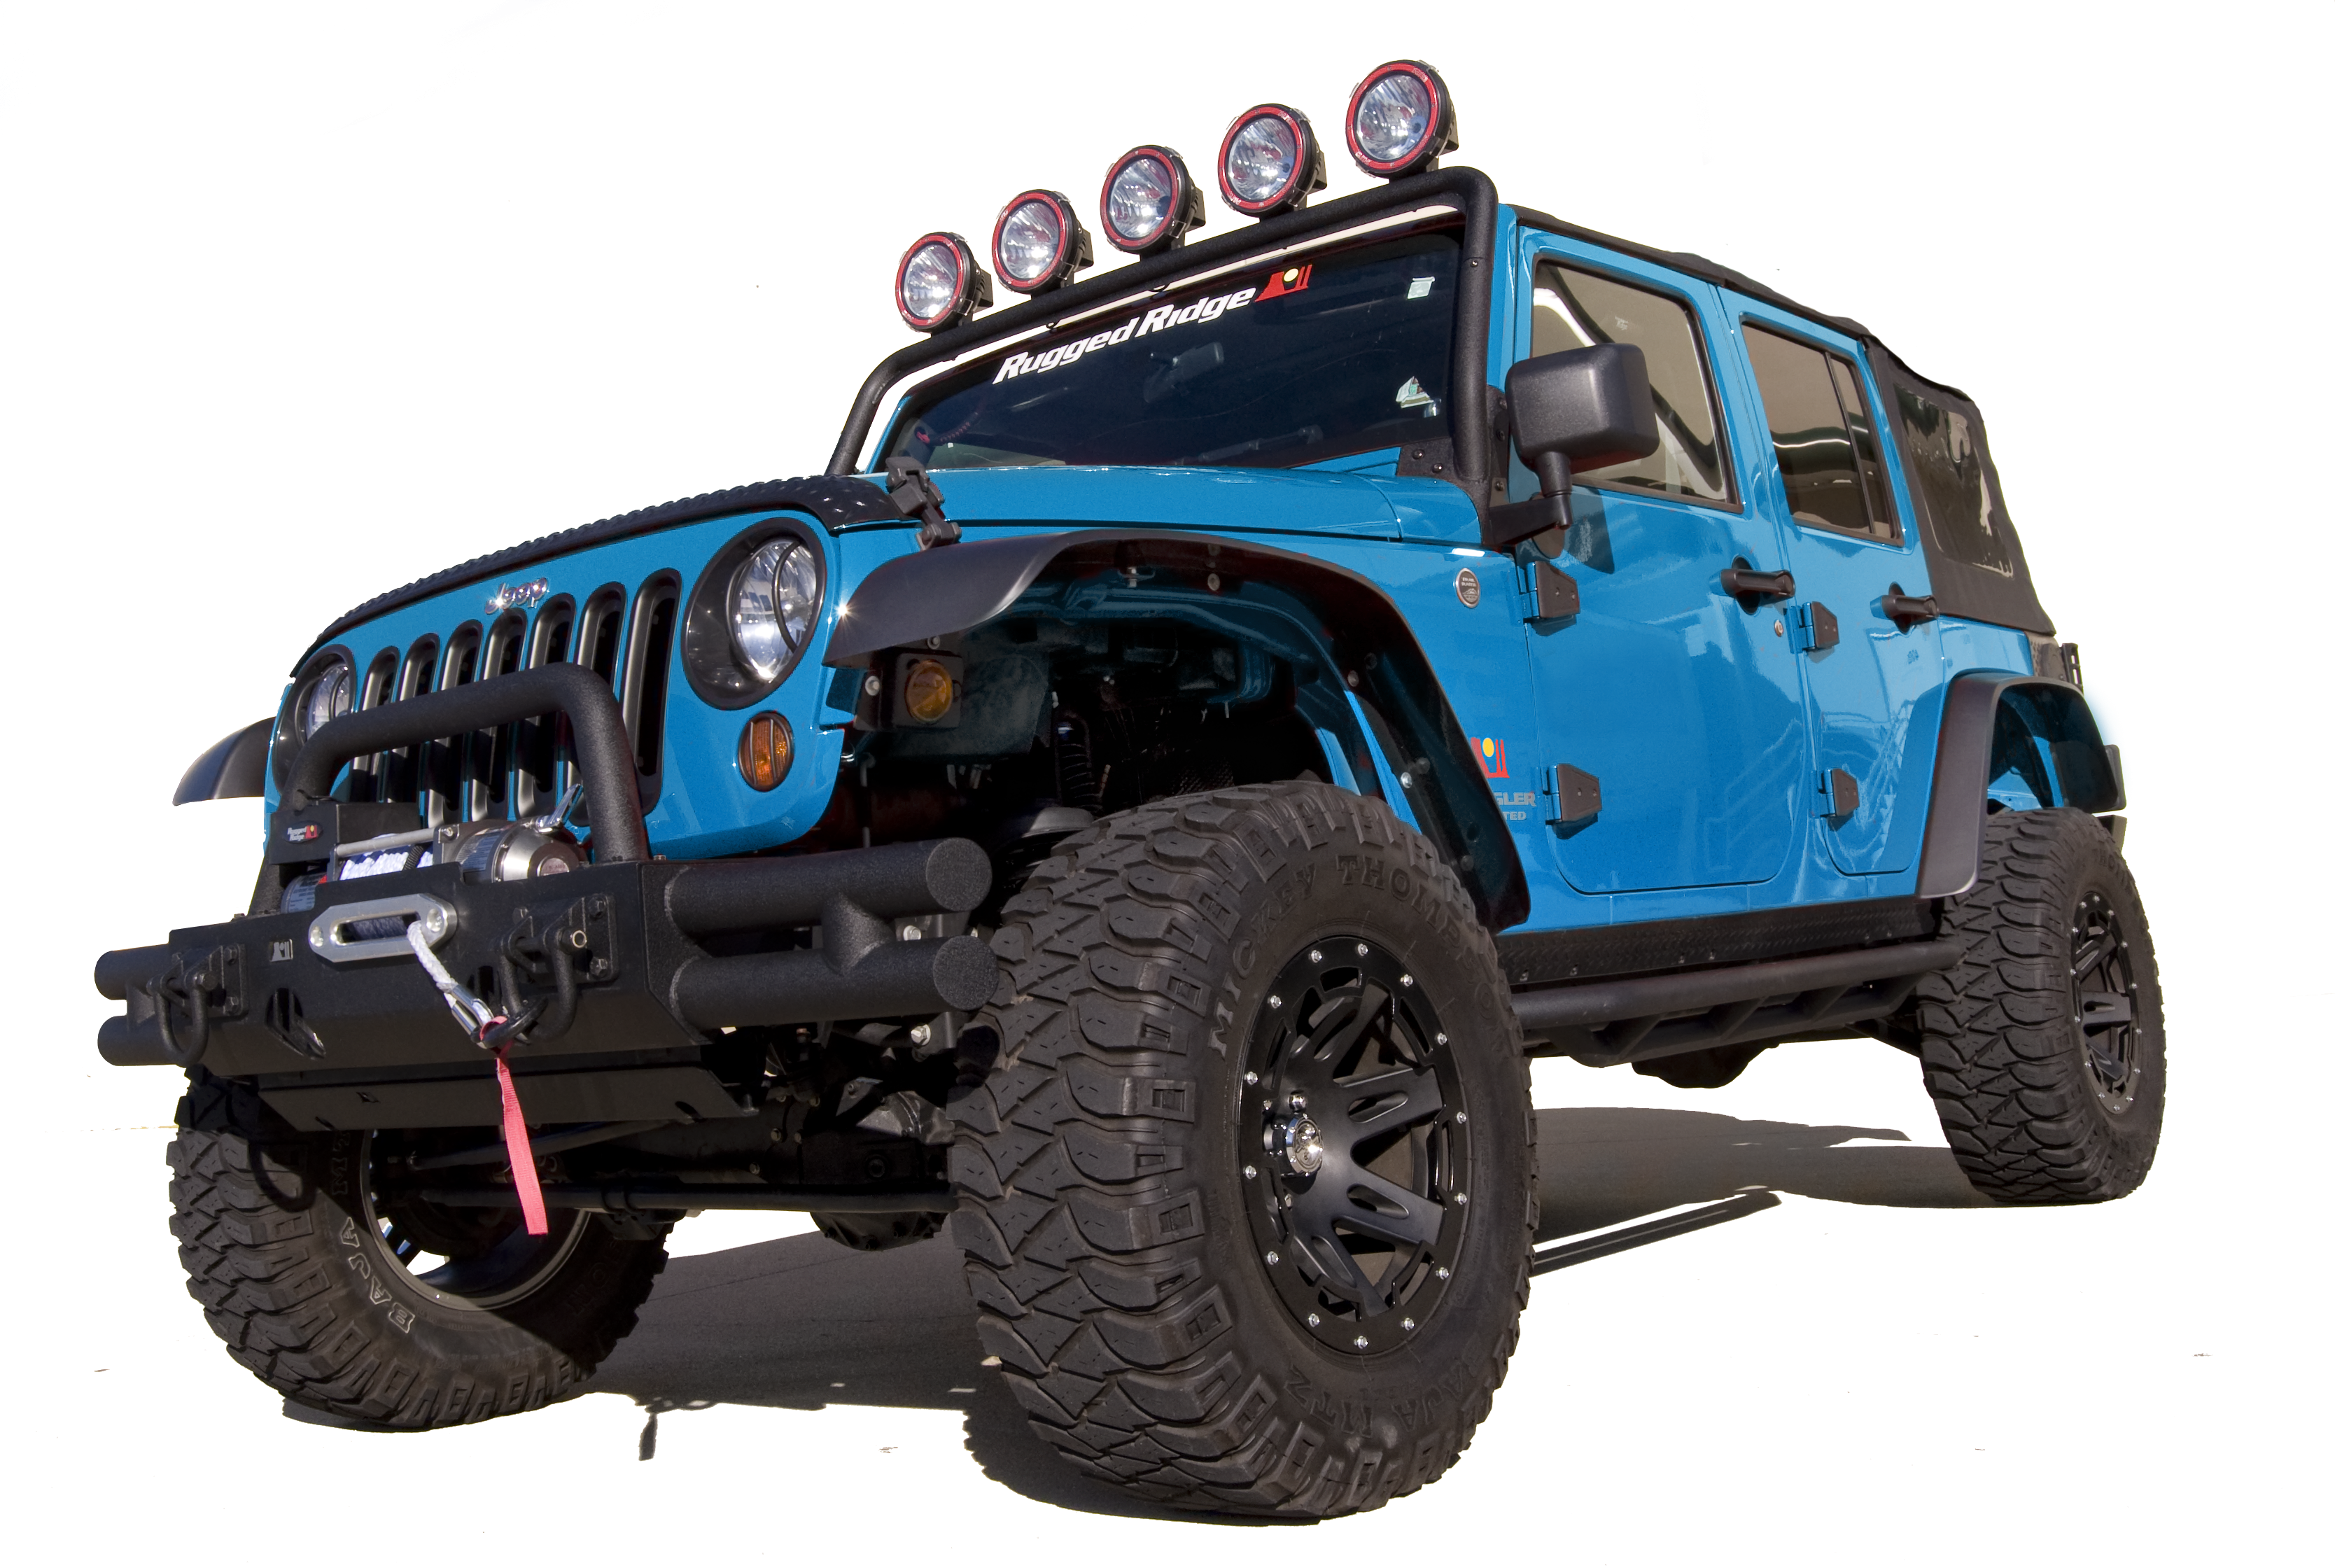 Did You Like The Look Of The Lower Forty Jeep Concept, Where Jeep Reduced  Body Roll By Raising The Fender For Greater Tire Clearance?